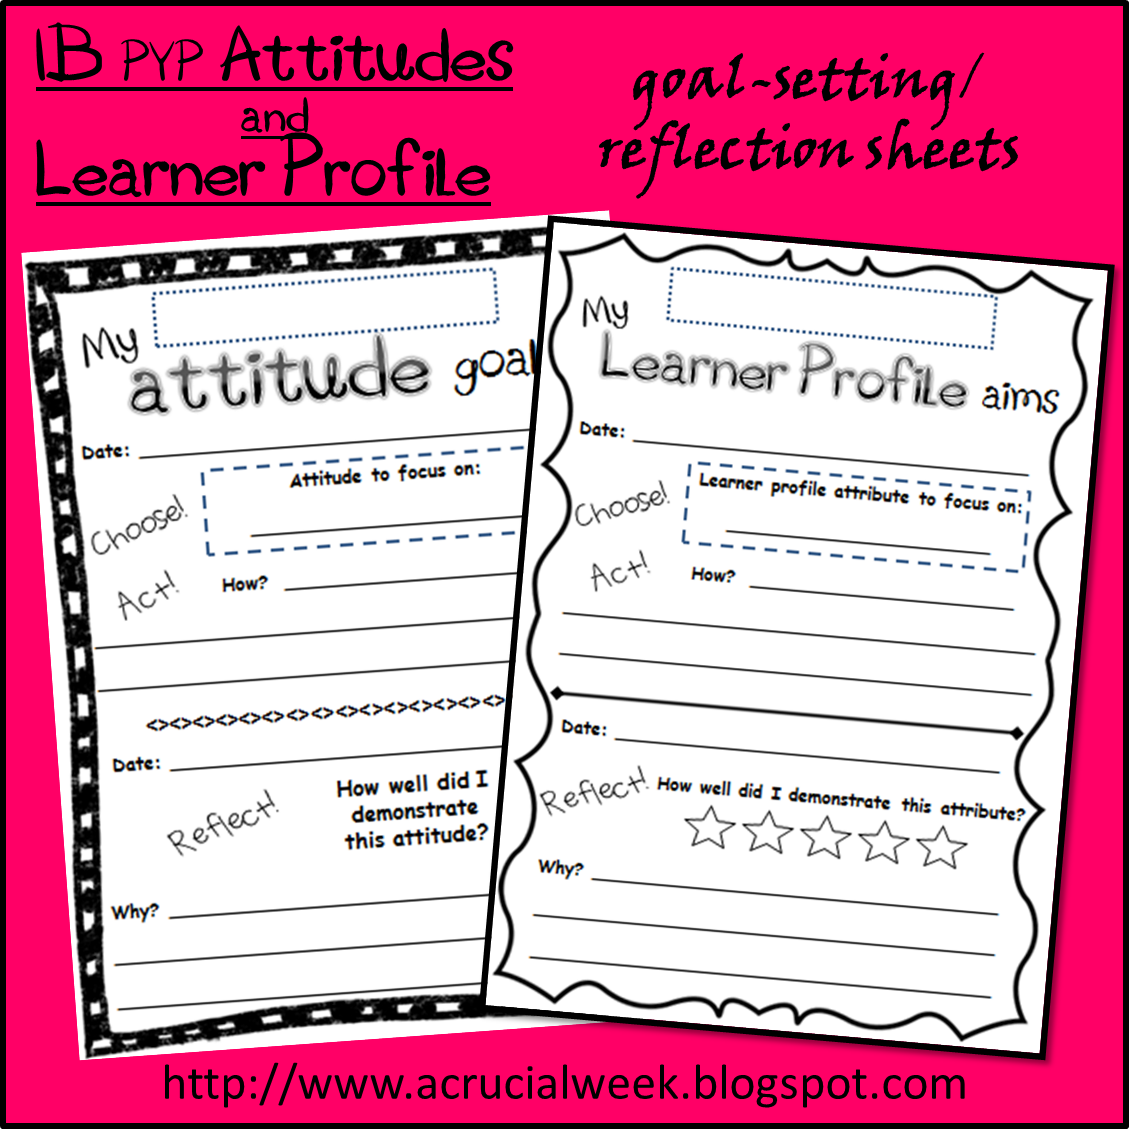 A Crucial Week: Learner Profile and IB PYP Attitudes goal-setting ...